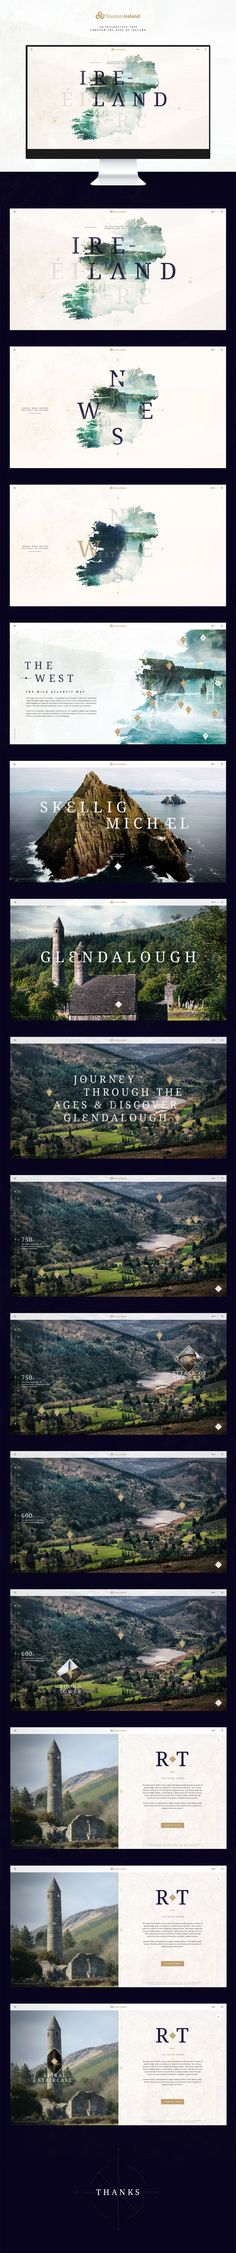 Ireland - Through The Ages on Behance